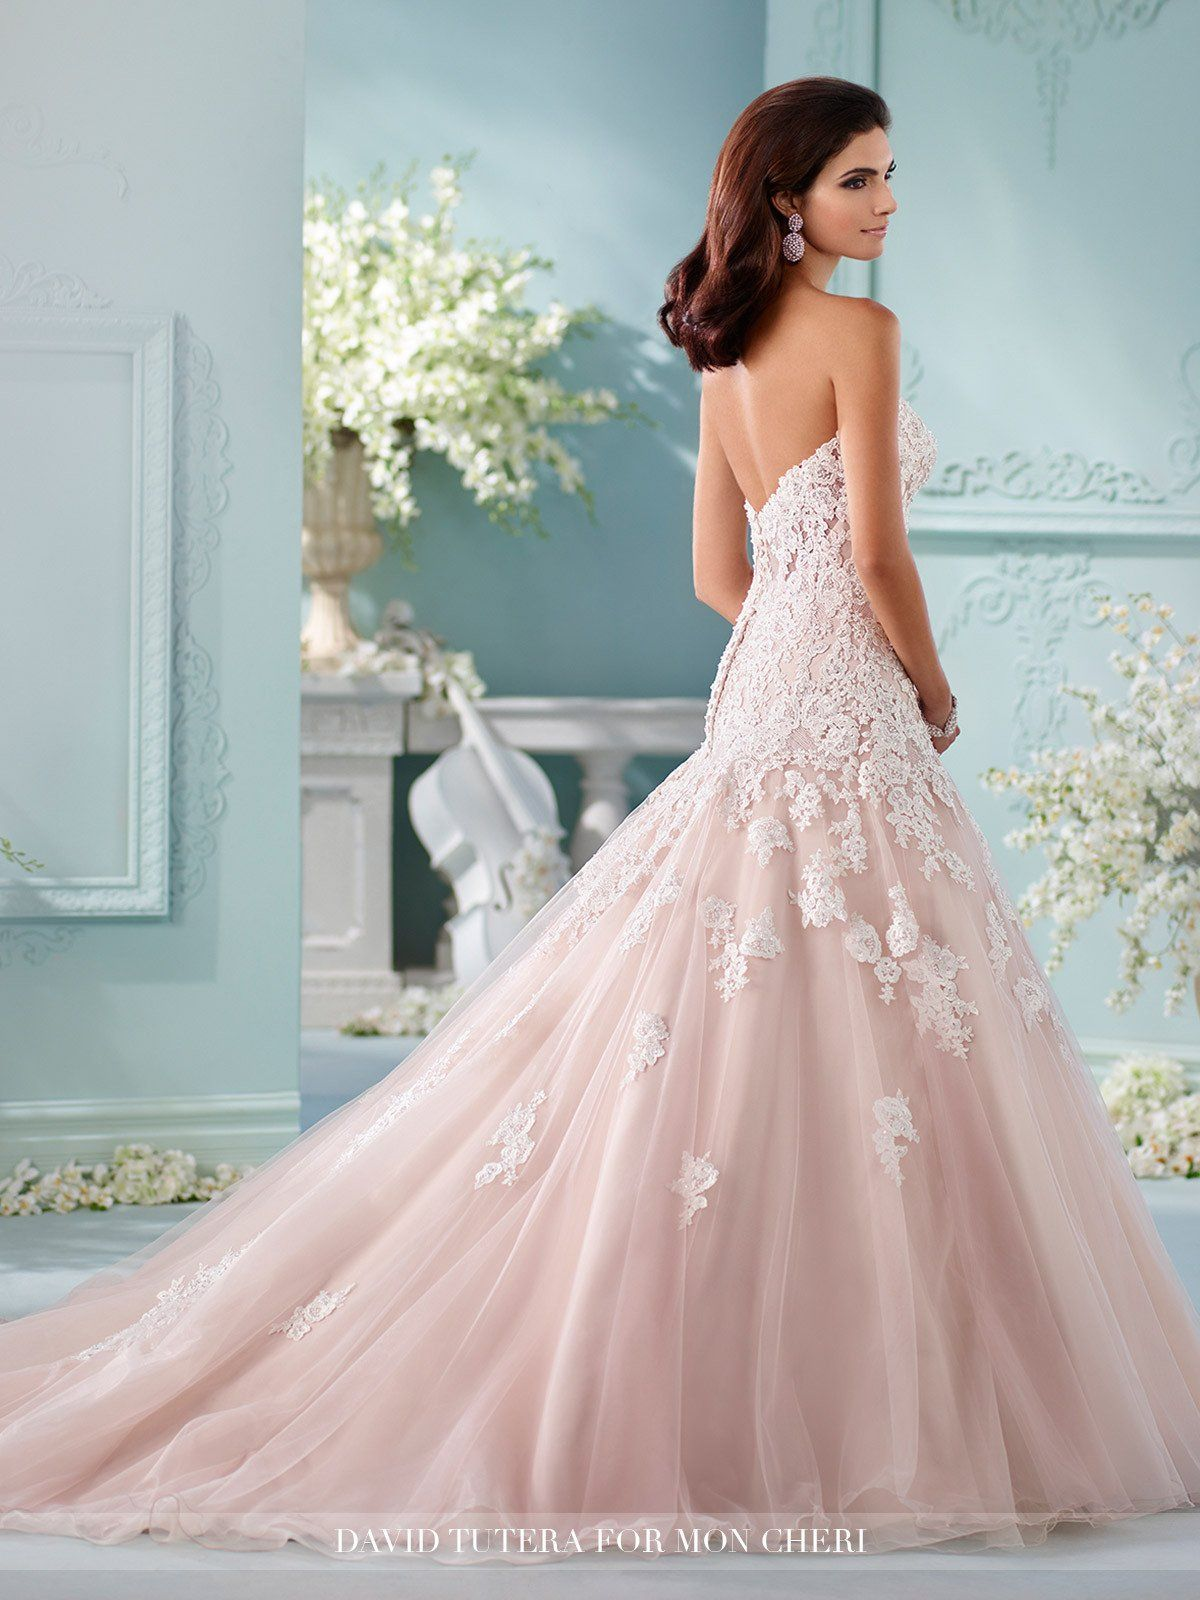 Blog | David tutera, Tuxedo rental and Bridal boutique